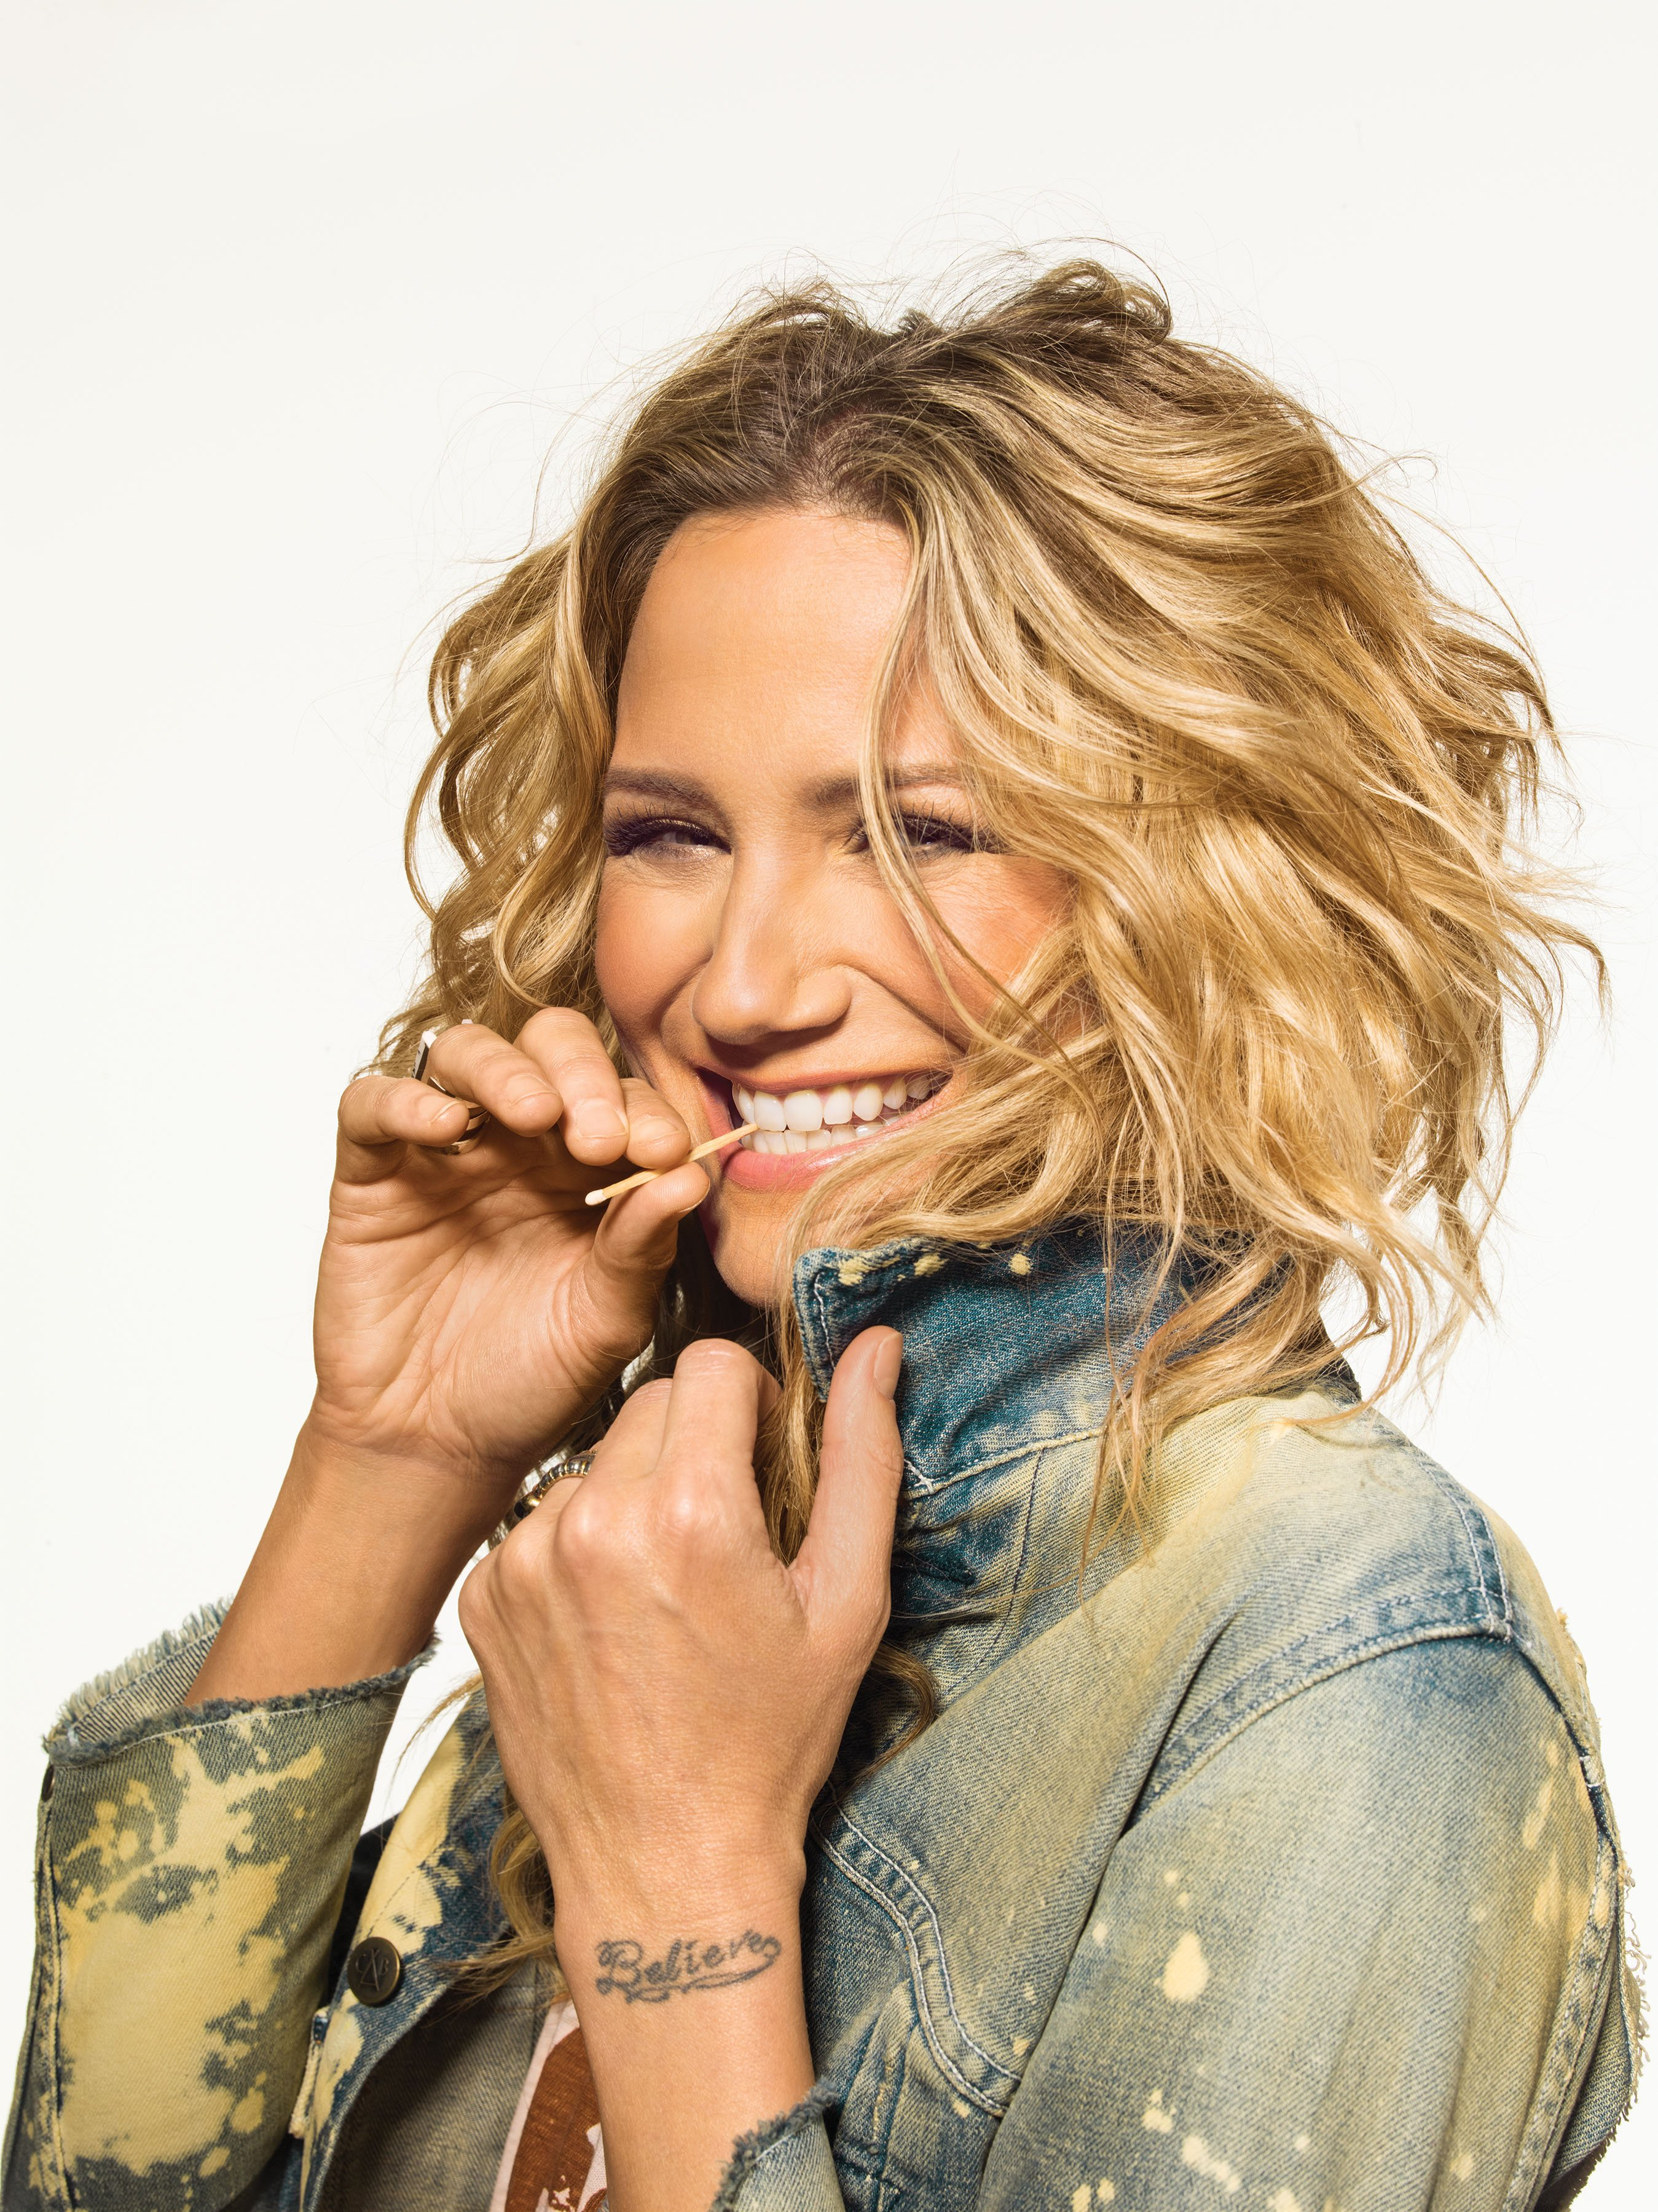 jennifer nettles - official music videos, songs, and more - vevo